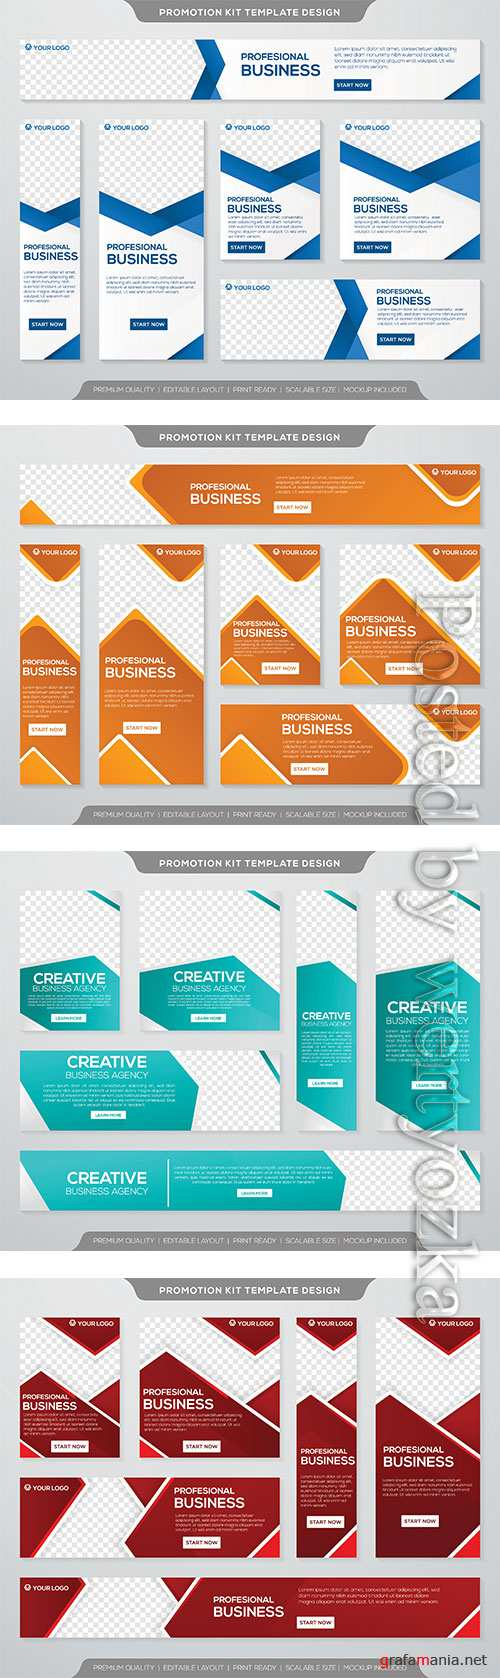 Business promotion kit template with simple layout